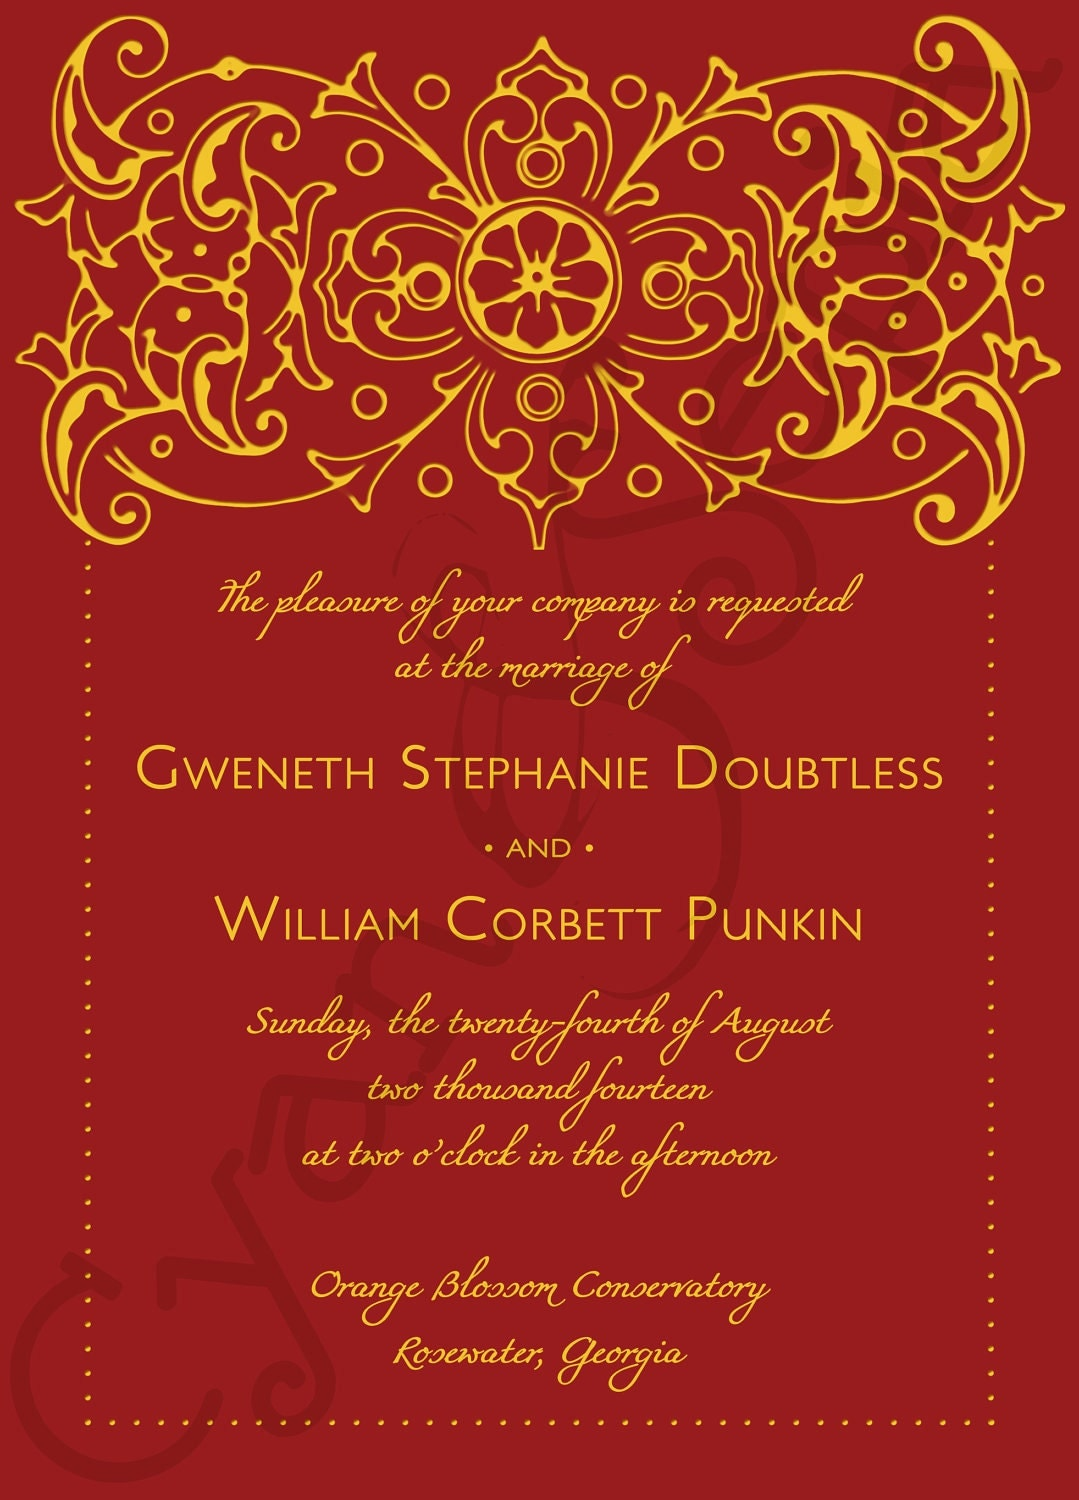 Indian Wedding Invitations Text with beautiful invitations layout